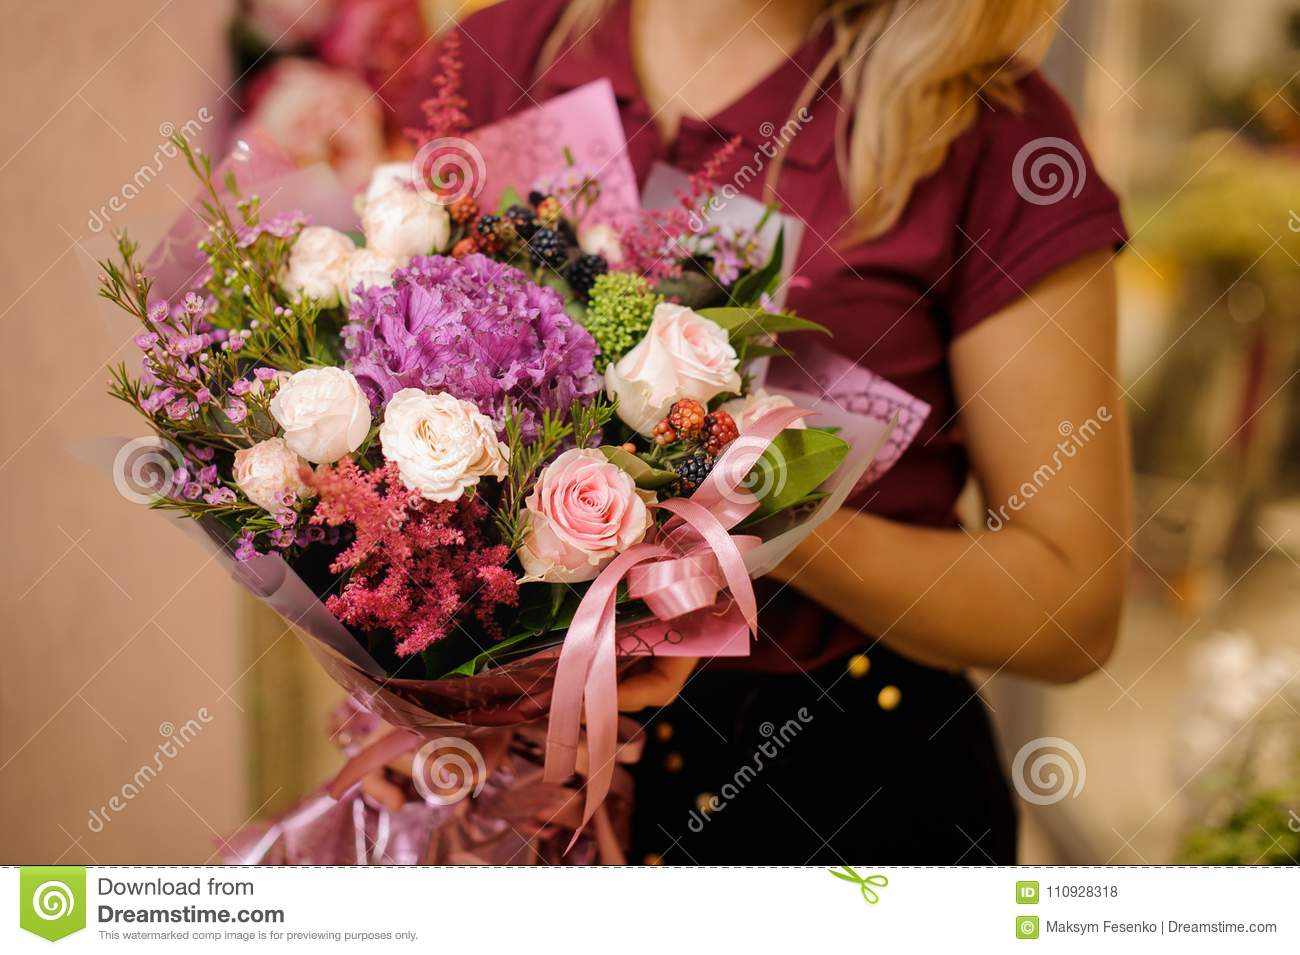 Girl Holding A Bouquet Of Roses, Astilba And Berries Stock Photo ...